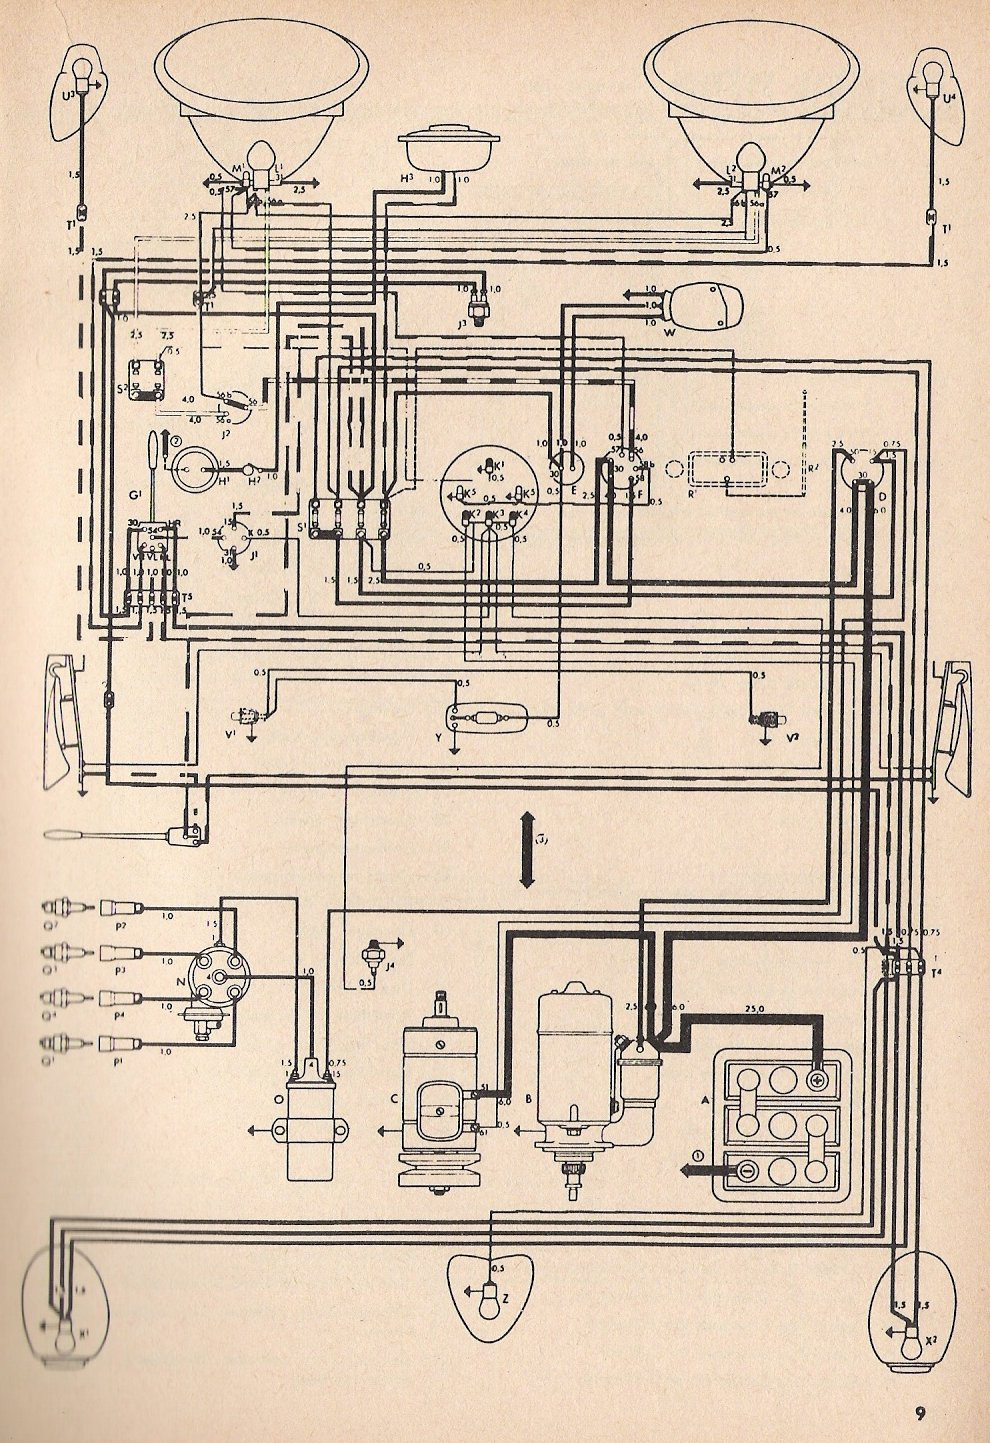 Vw Wiring Harness Diagram Will Be A Thing John Deere H Thesamba Com Type 1 Diagrams Rh Volkswagen Radio Bug